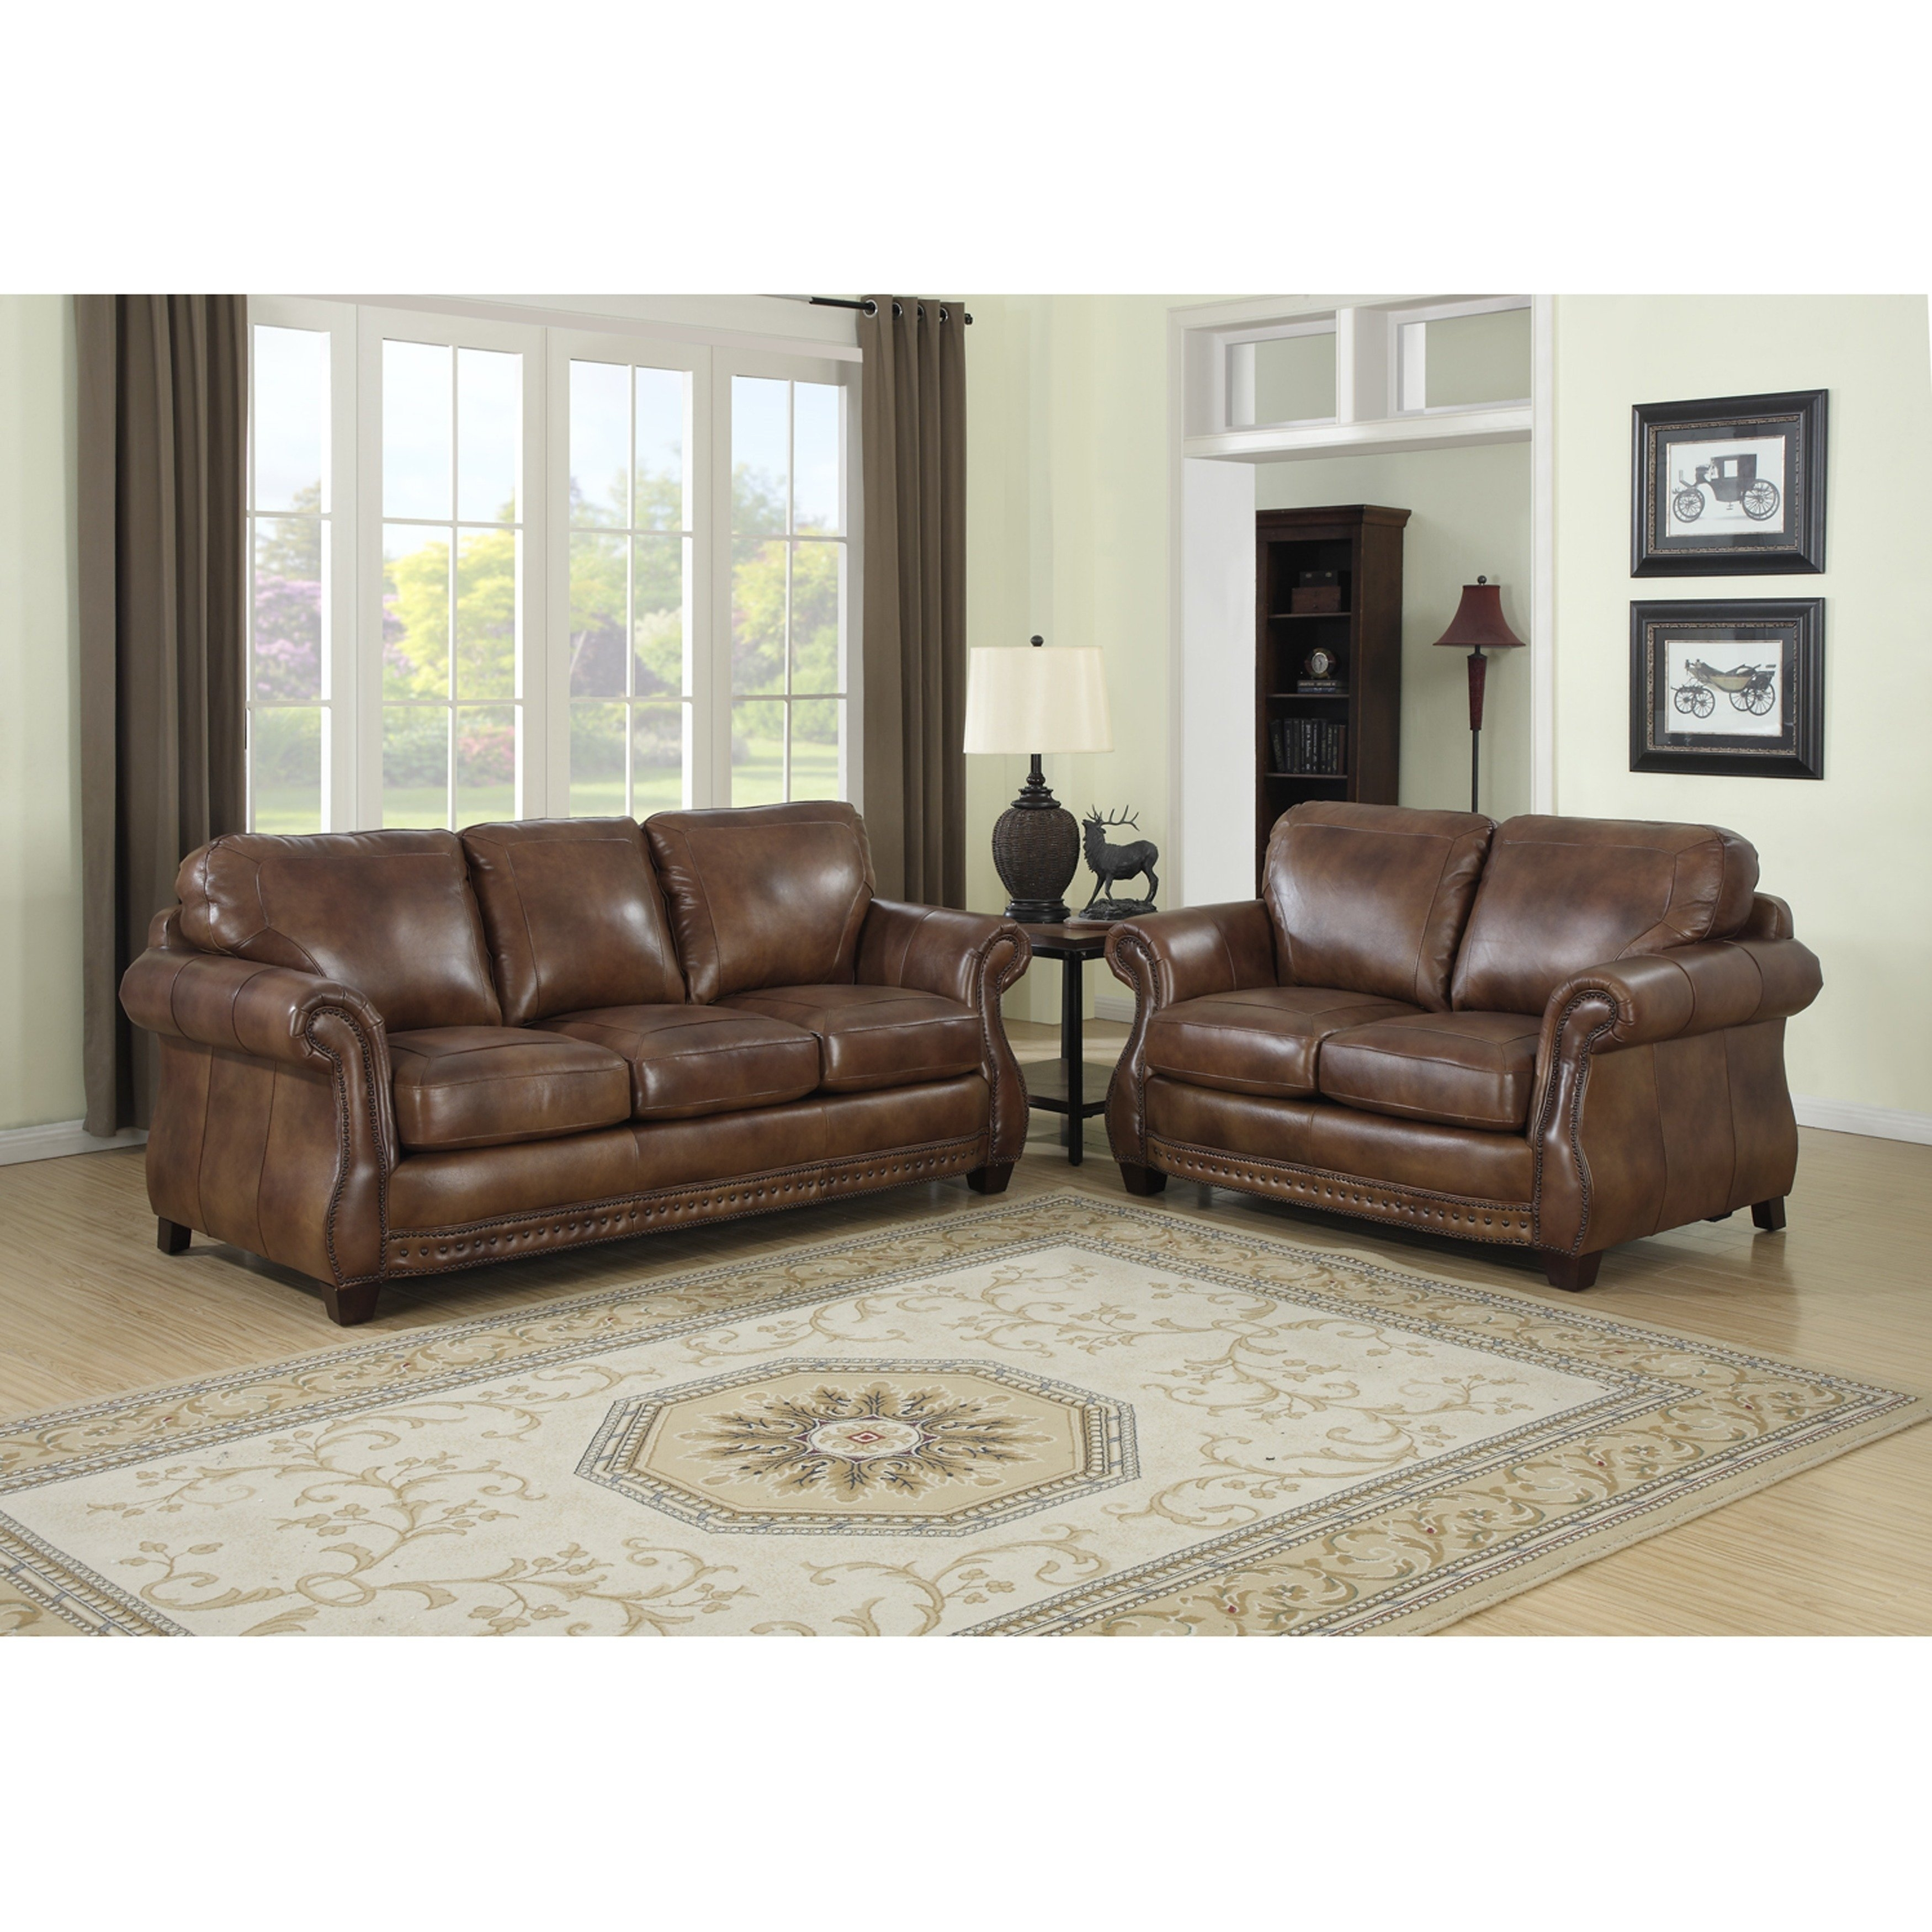 Cognac Sofa | Baci Living Room Pertaining To Tenny Cognac 2 Piece Left Facing Chaise Sectionals With 2 Headrest (Image 10 of 25)